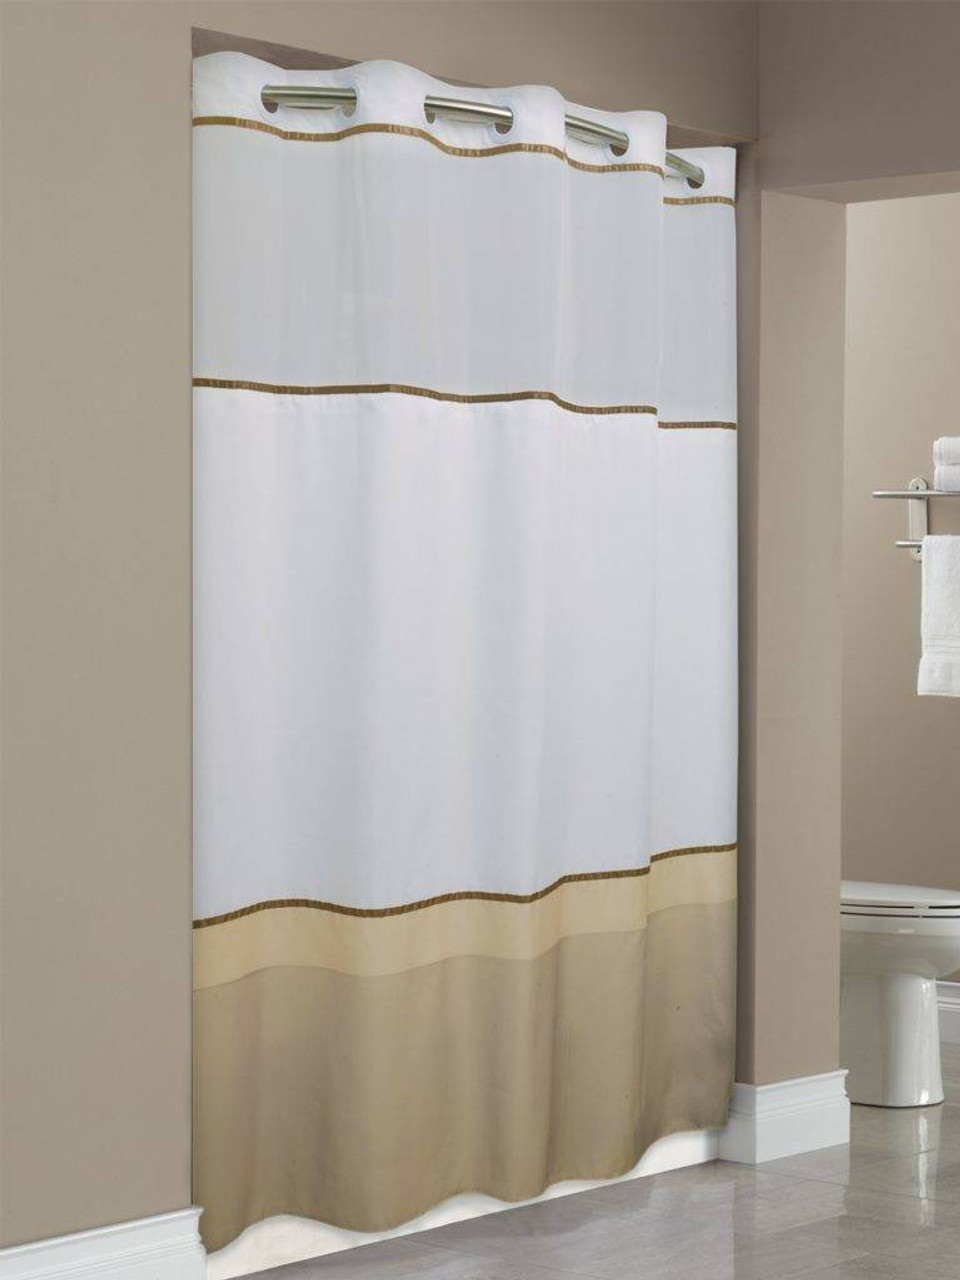 Focus Product Group Wellington or Hookless or Polyester or Shower Curtain or Pack of 12